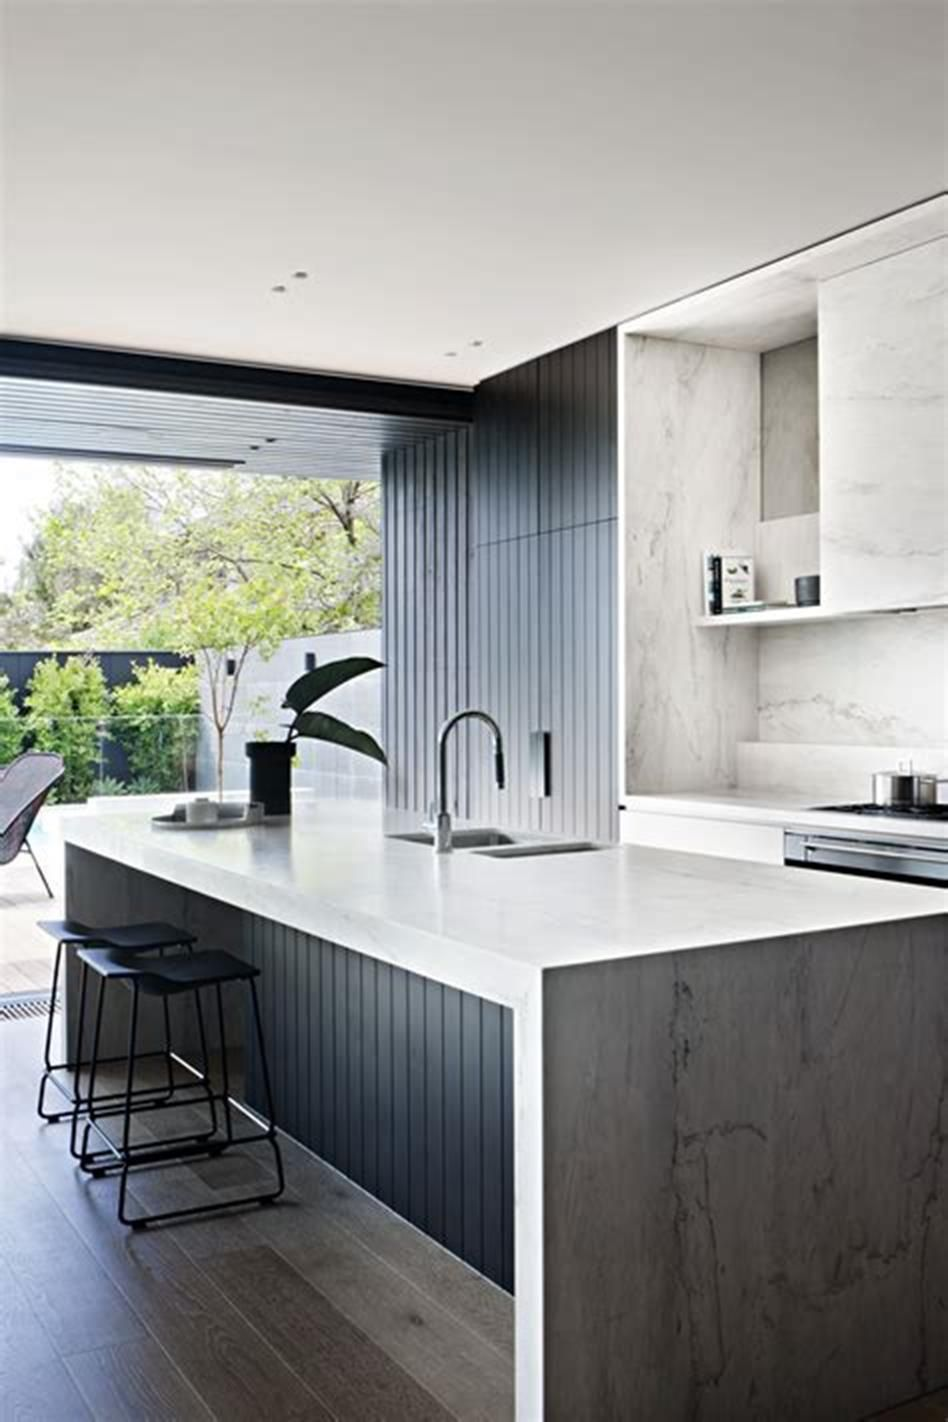 31 Amazing Modern Kitchen Ideas For 2020 You Ll Love 47 Homegrs